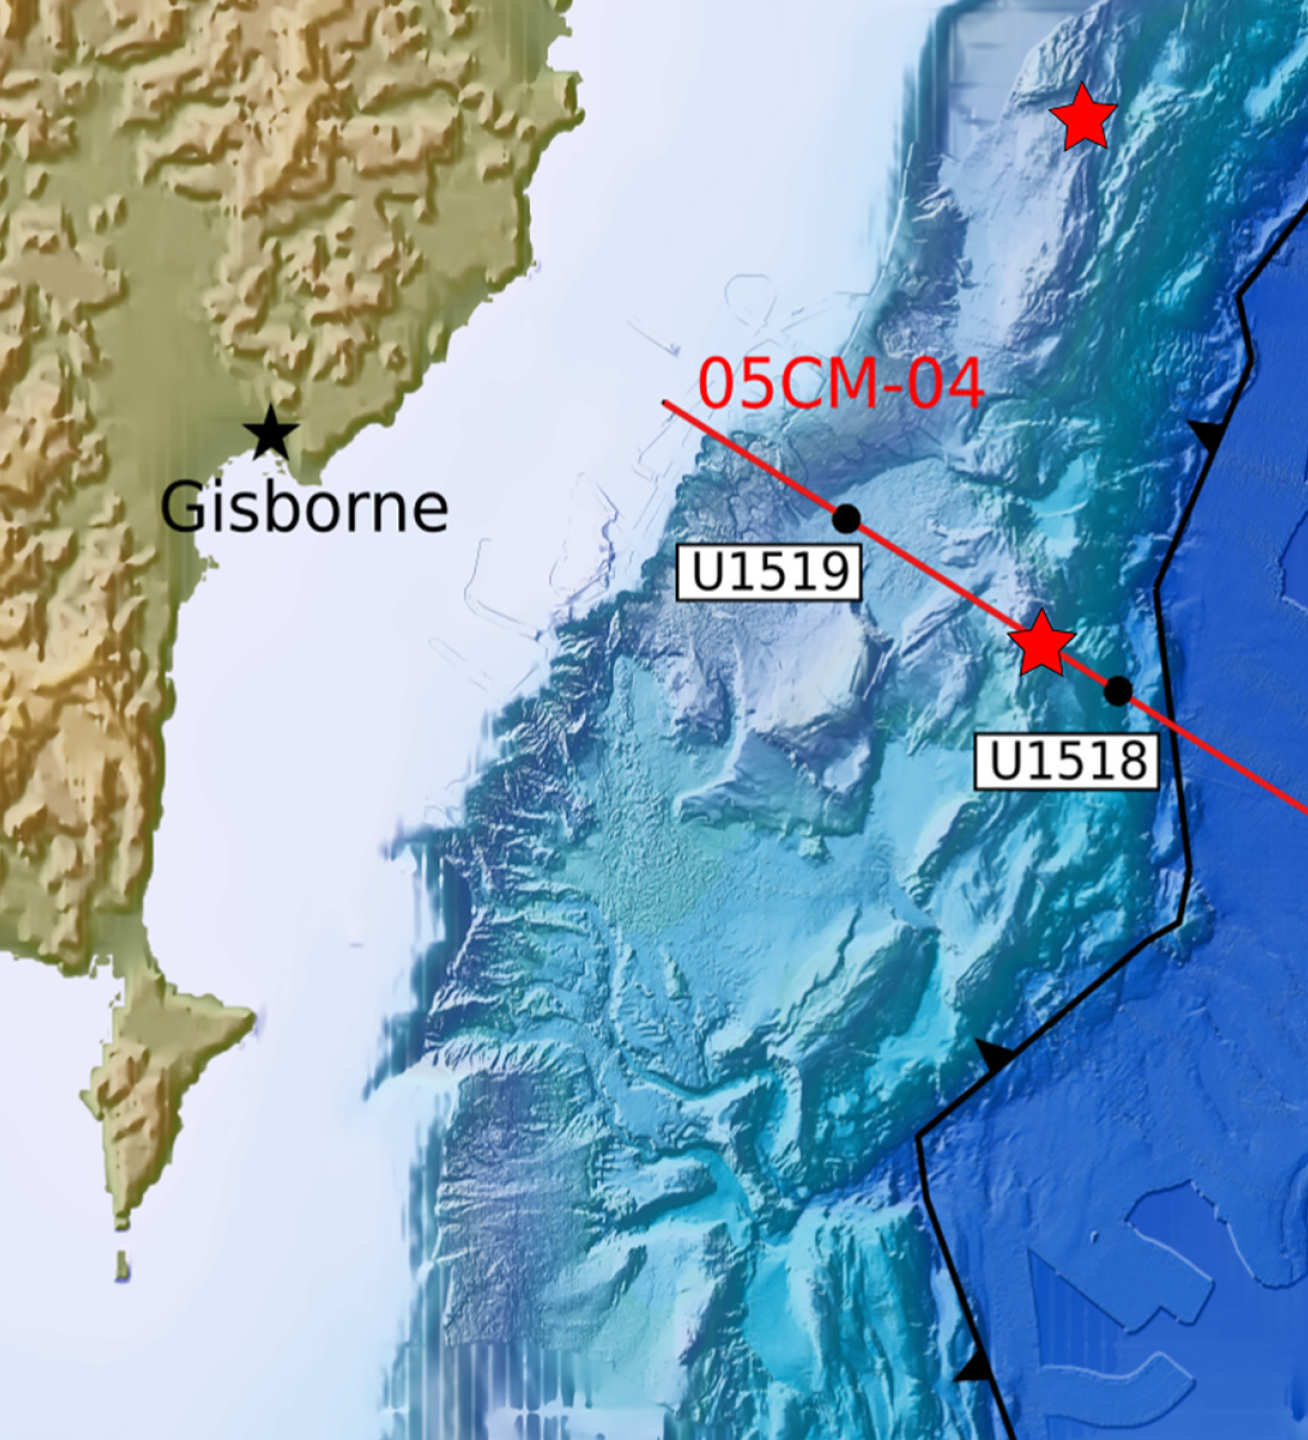 Map showing location of Gisborne city, the site of the tsunami-triggering 1947 earthquakes (red stars), and the Hikurangi subduction zone (black line)